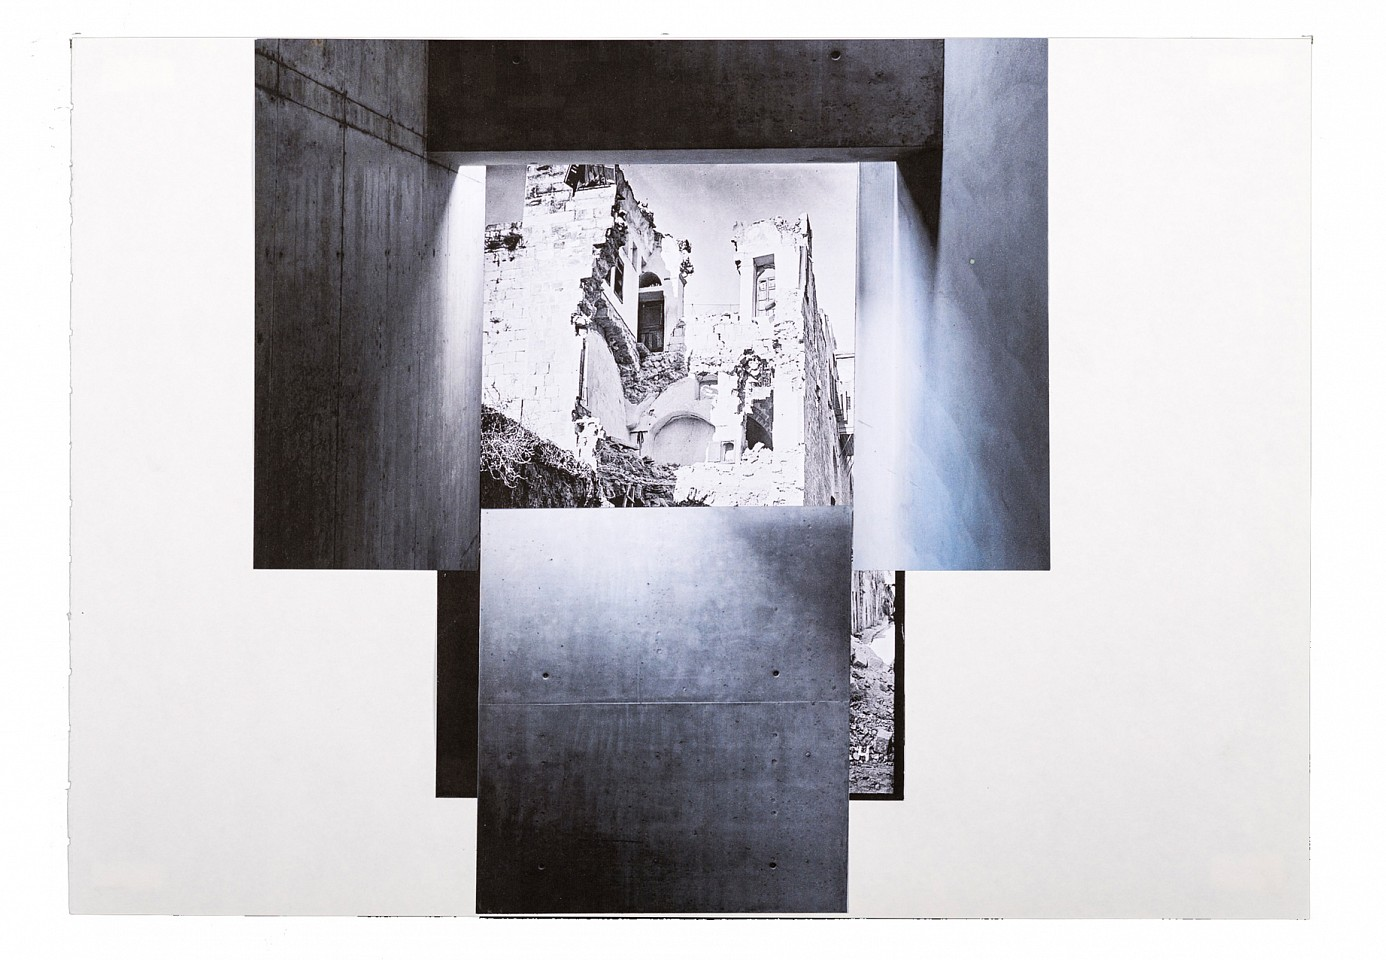 """<p><span class=""""viewer-caption-artist"""">Hazem Harb</span></p> <p><span class=""""viewer-caption-title""""><i>Untitled #7 from the Archaeology of Occupation series</i></span>, <span class=""""viewer-caption-year"""">2015</span></p> <p><span class=""""viewer-caption-media"""">Print Collage</span></p> <p><span class=""""viewer-caption-dimensions"""">30 x 42 cm (11 3/4 x 16 1/2 in.)</span></p> <p><span class=""""viewer-caption-inventory"""">HAH0253</span></p> <p><span class=""""viewer-caption-aux""""></span></p>"""